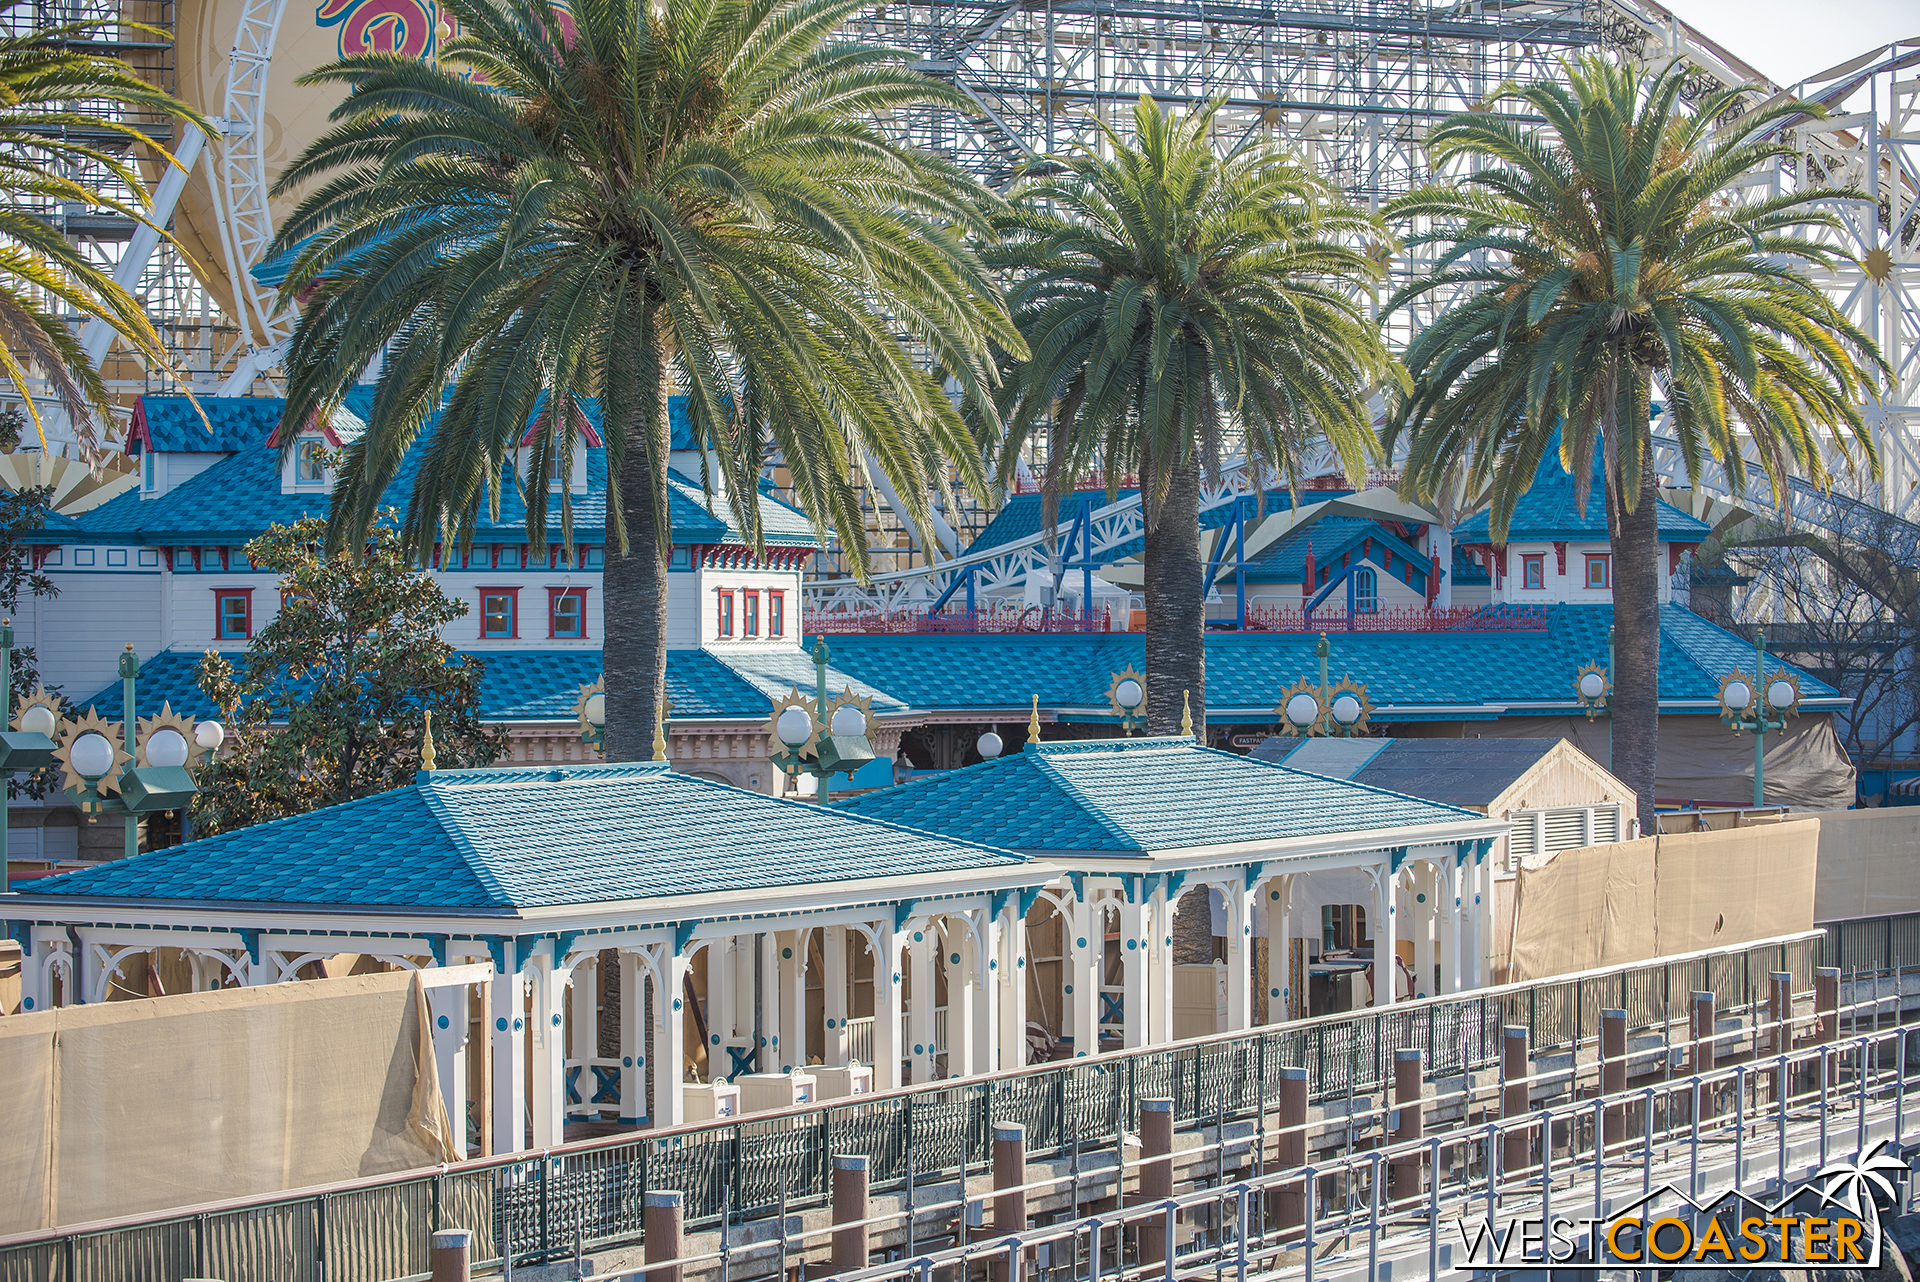 Shade canopies are done and match the color scheme of the Toy Story Midway Mania building.